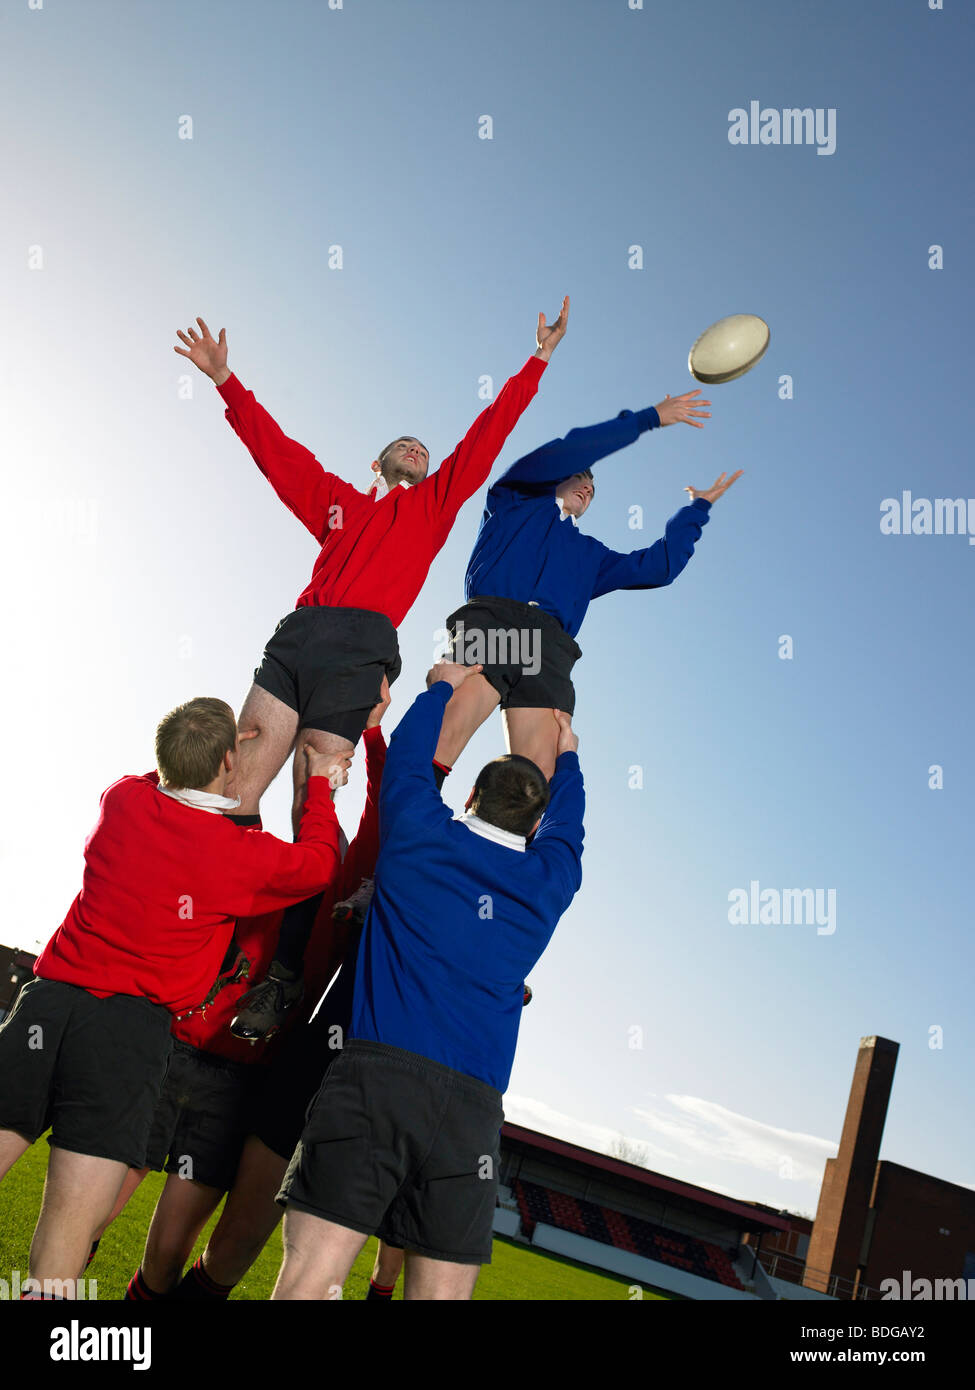 Rugby players practising - Stock Image